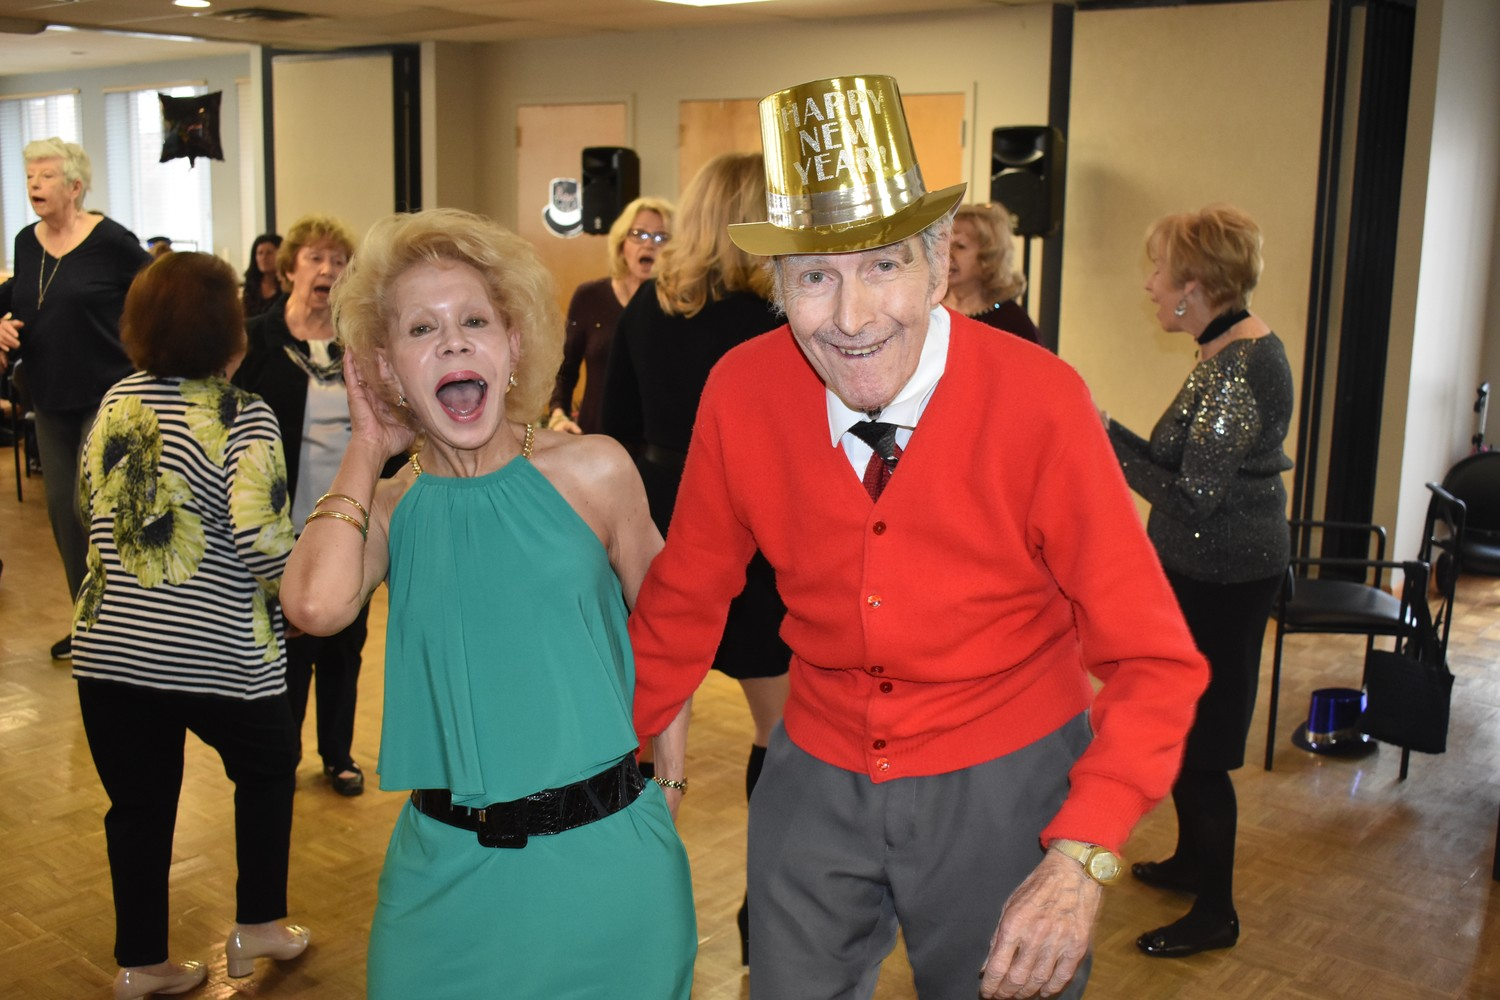 Sara Boegel and John Boles showed off their moves on the dance floor.